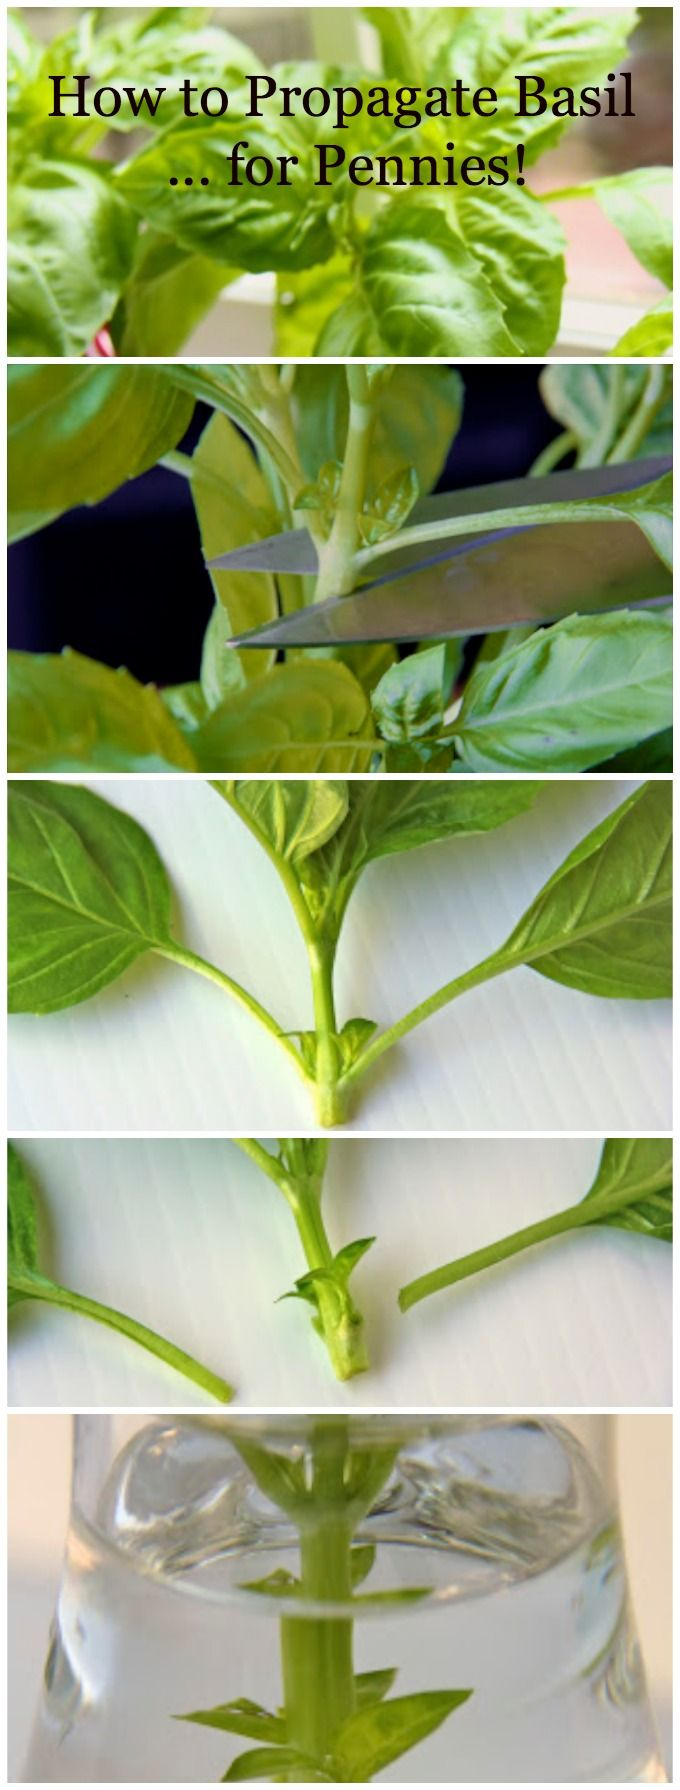 How to Propagate Basil ... for pennies! #basil